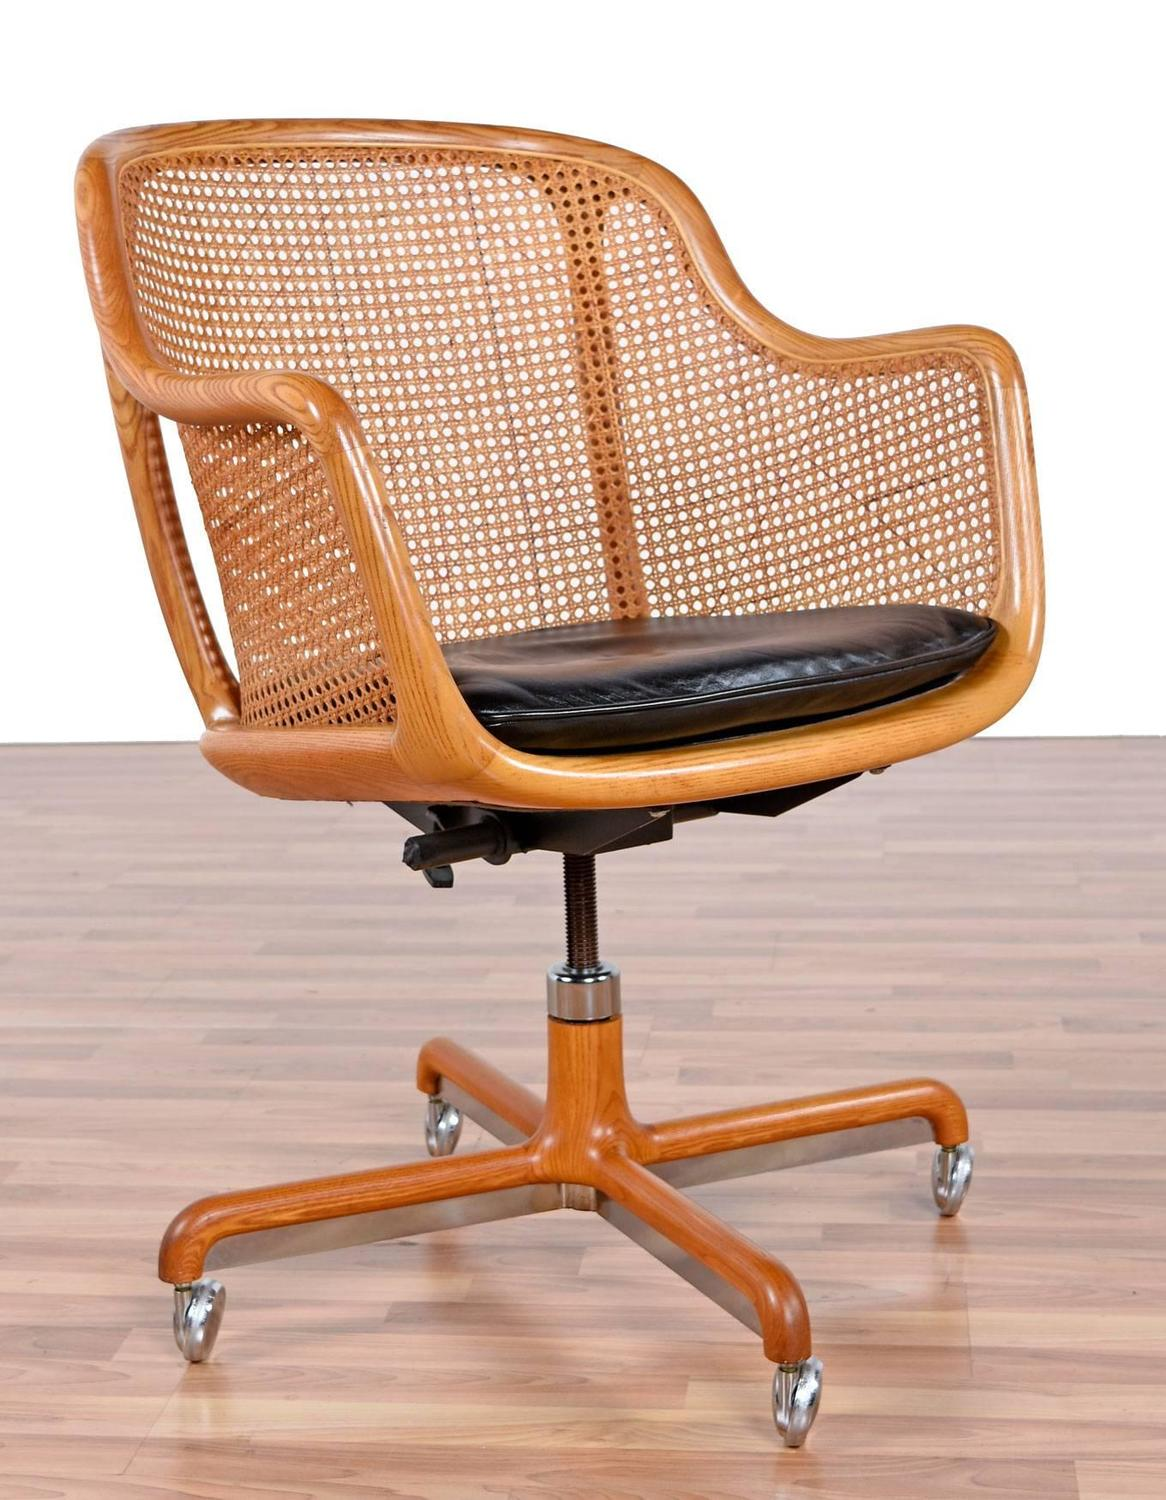 Mid Century Modern Cane Swivel Desk Chair By Ward Bennett At 1stdibs